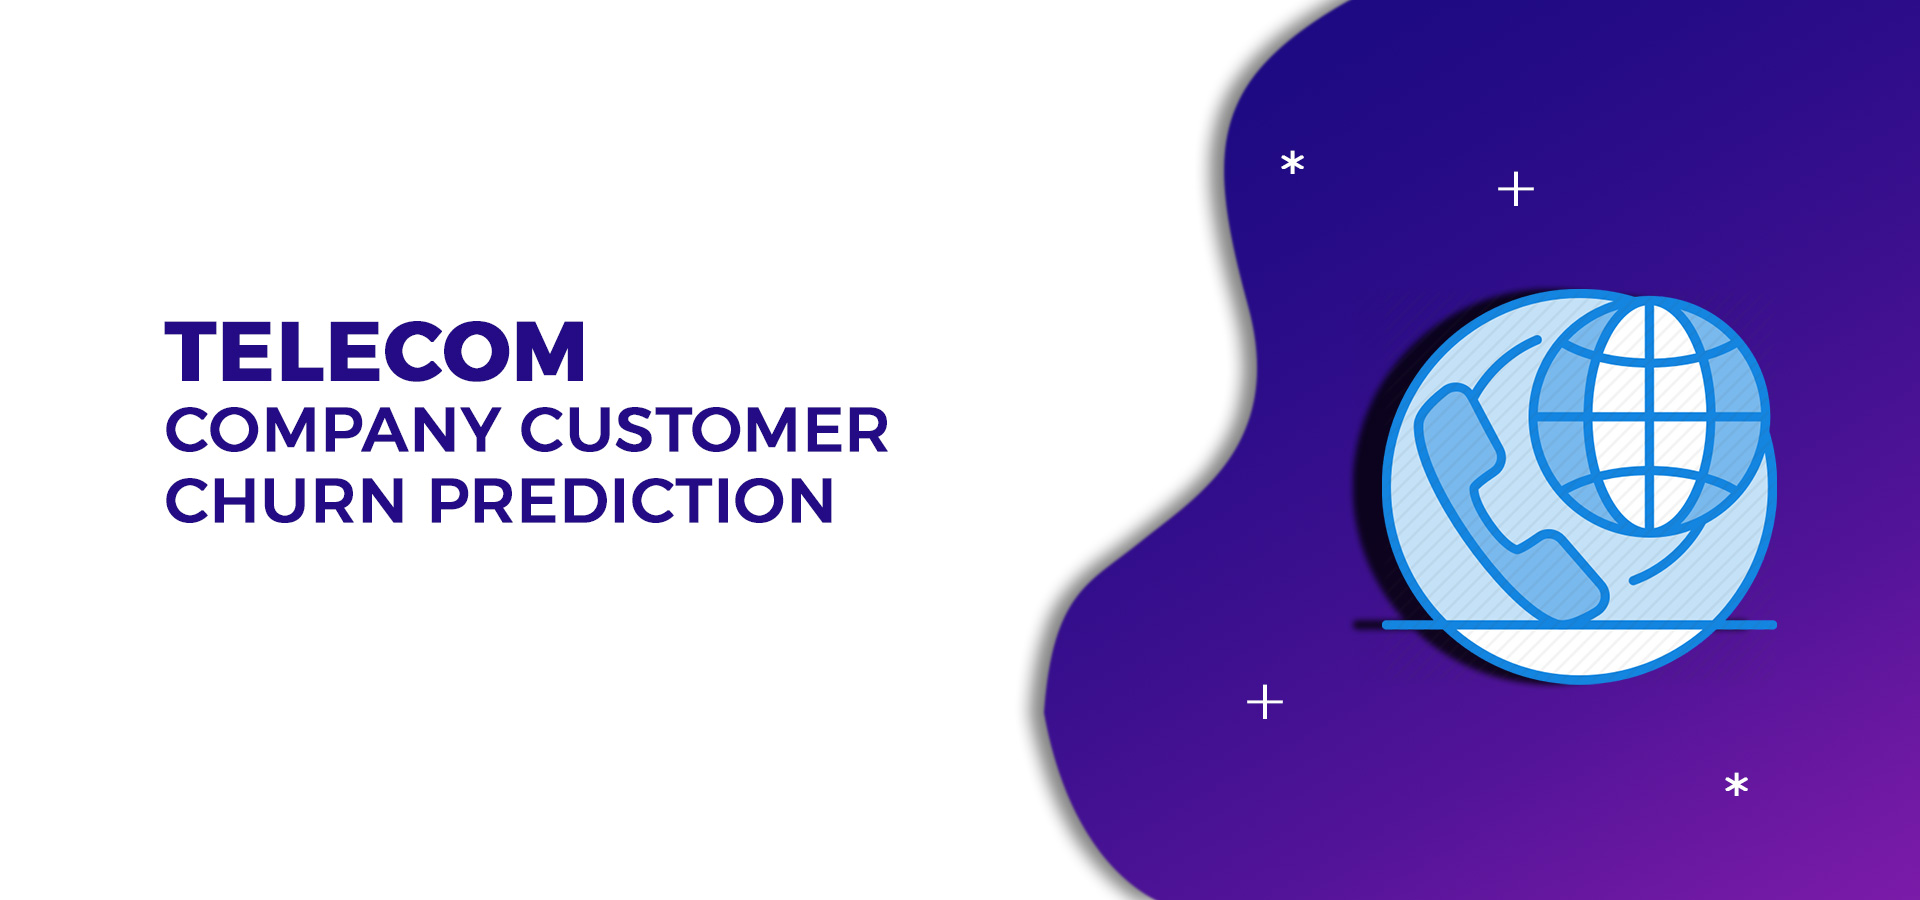 Telecom-Company-Customer-Churn-Prediction_1